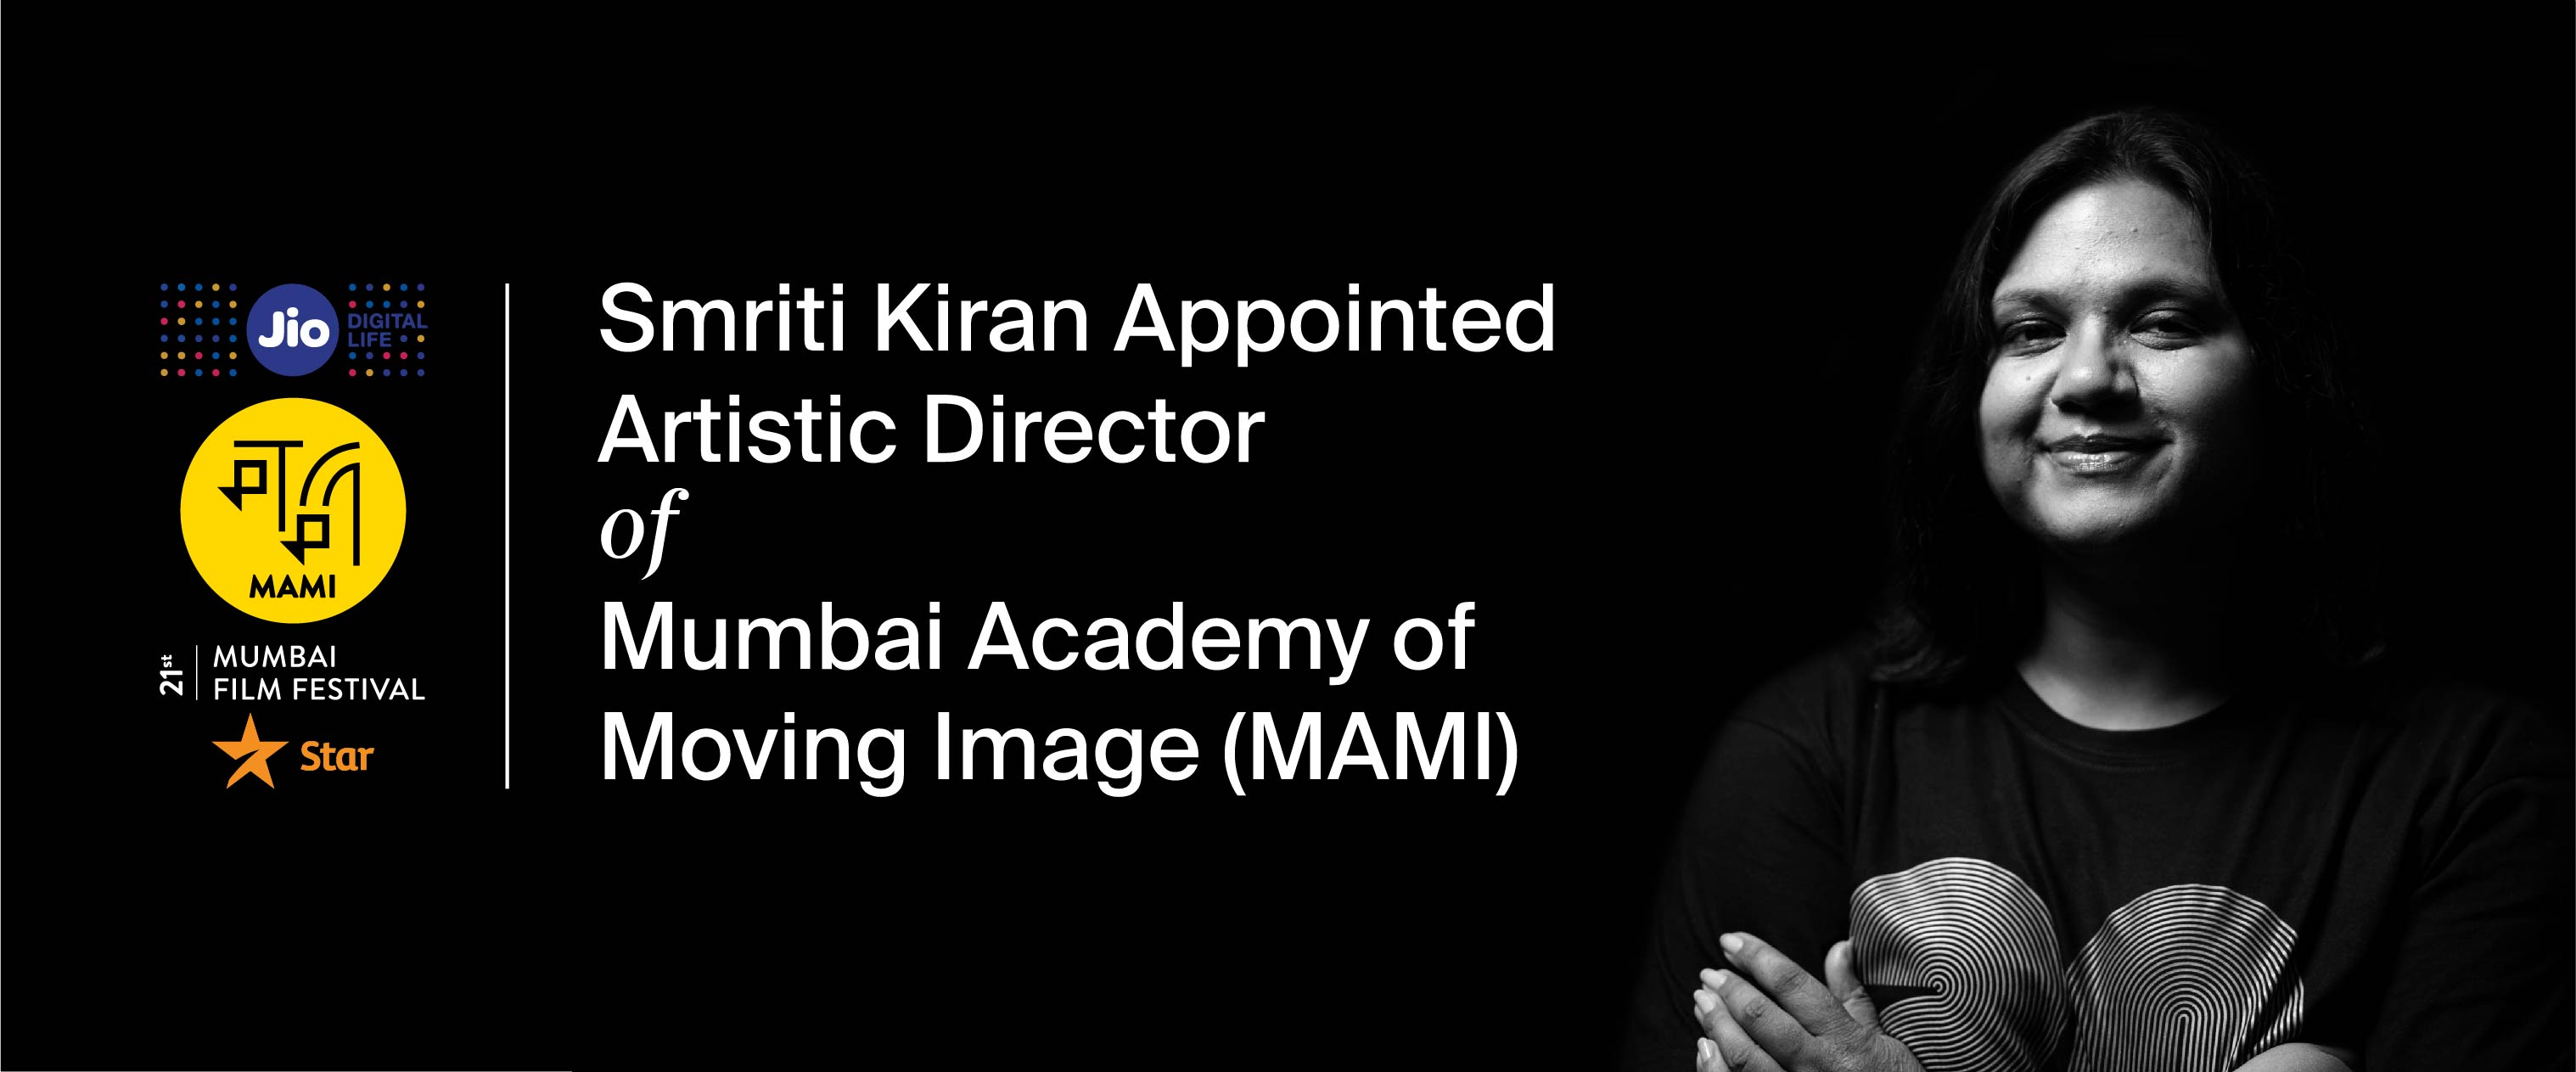 Smriti Kiran Appointed Artistic Director of Mumbai Academy of Moving Image (MAMI)